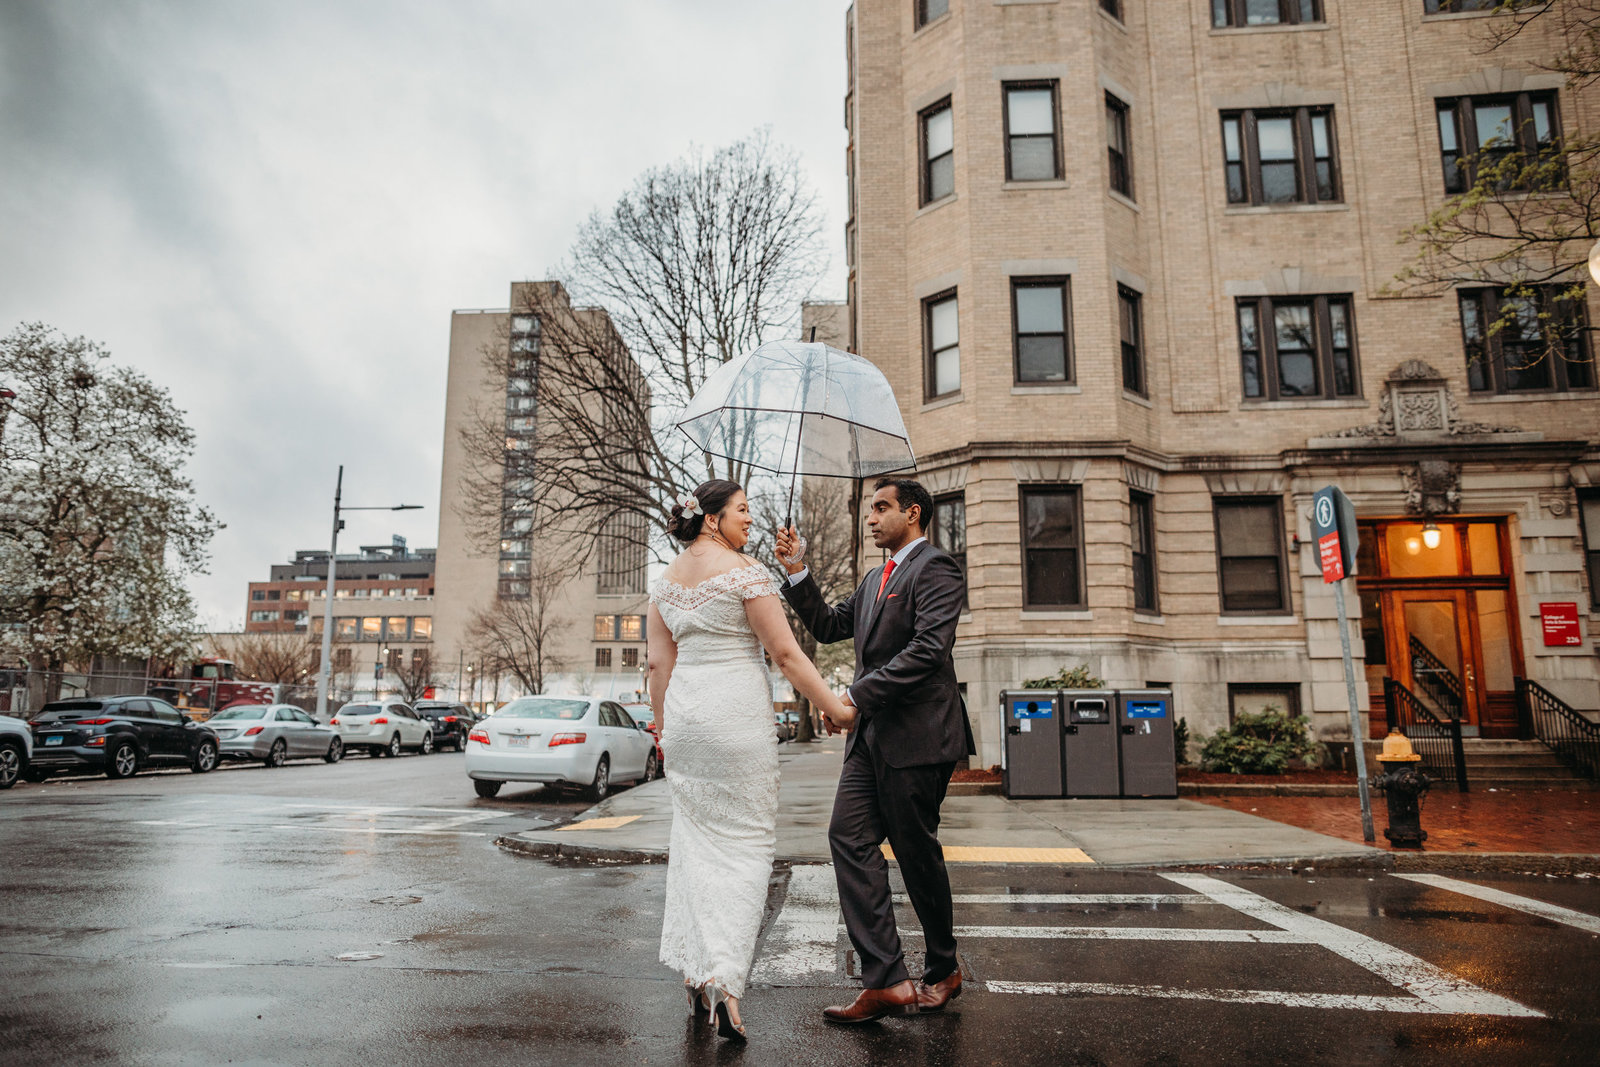 couple walks through boston in rain under umbrella